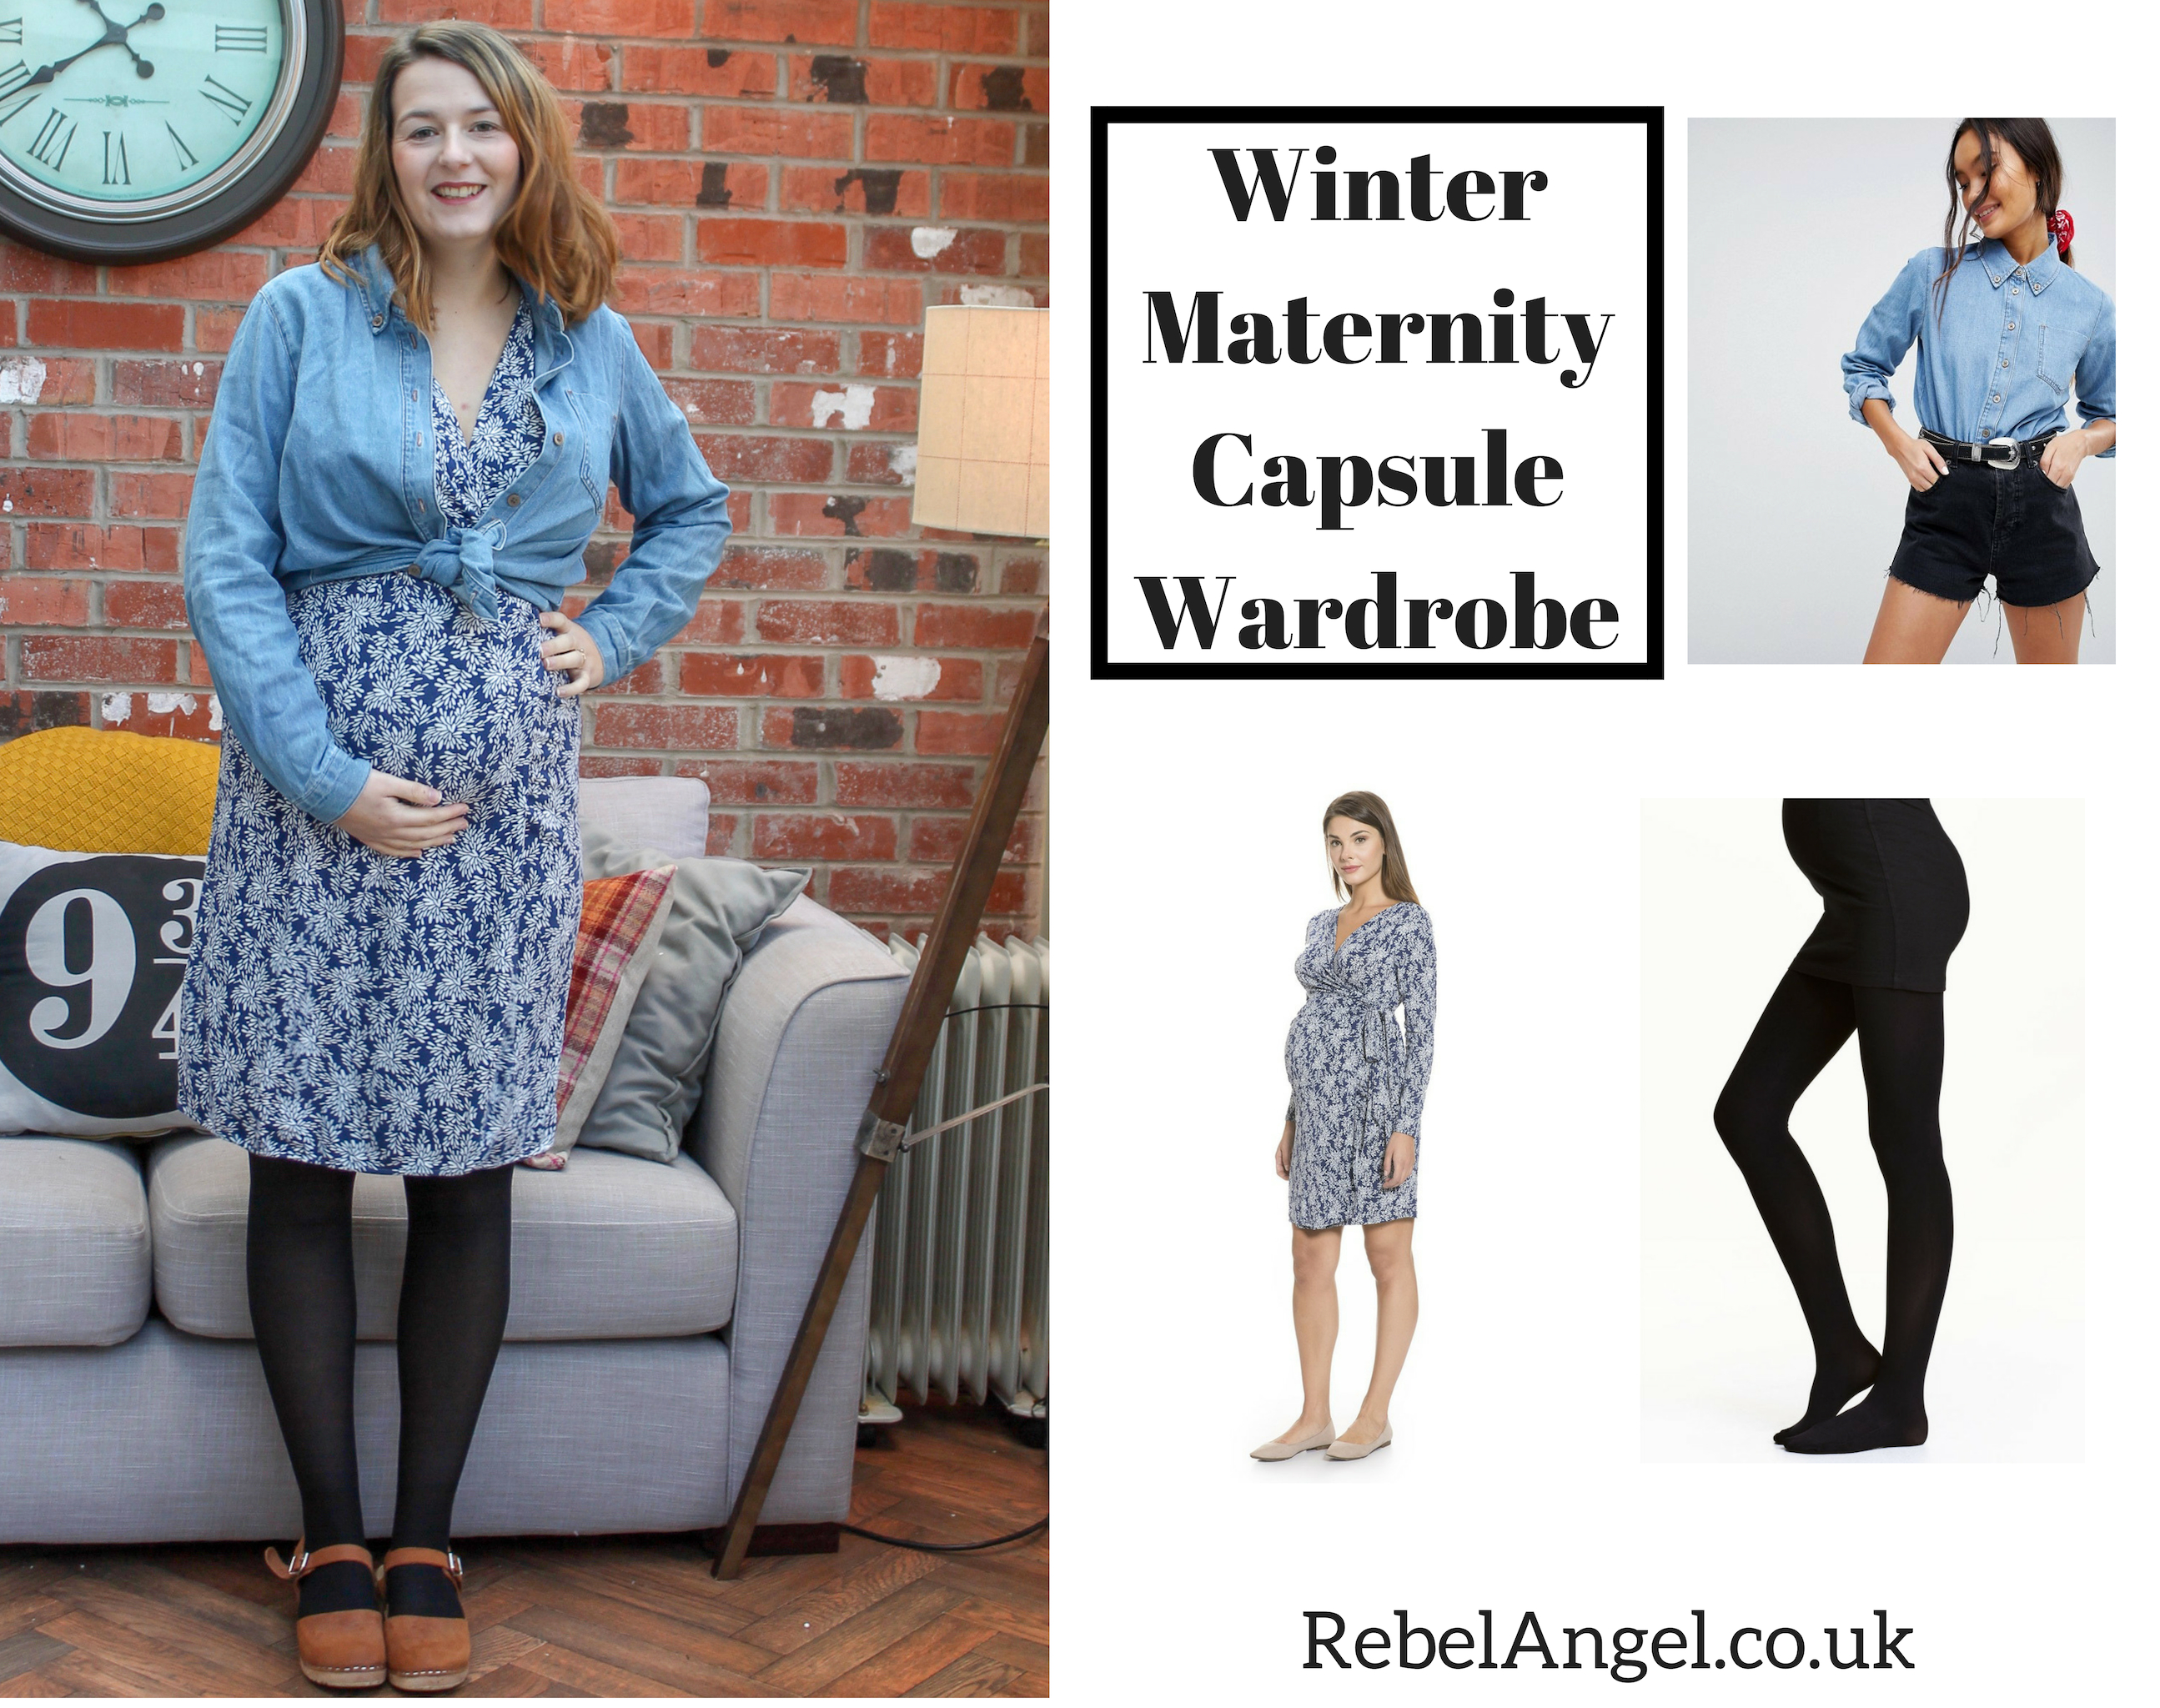 Winter Maternity Capsule Wardrobe - denim shirt & wrap dress